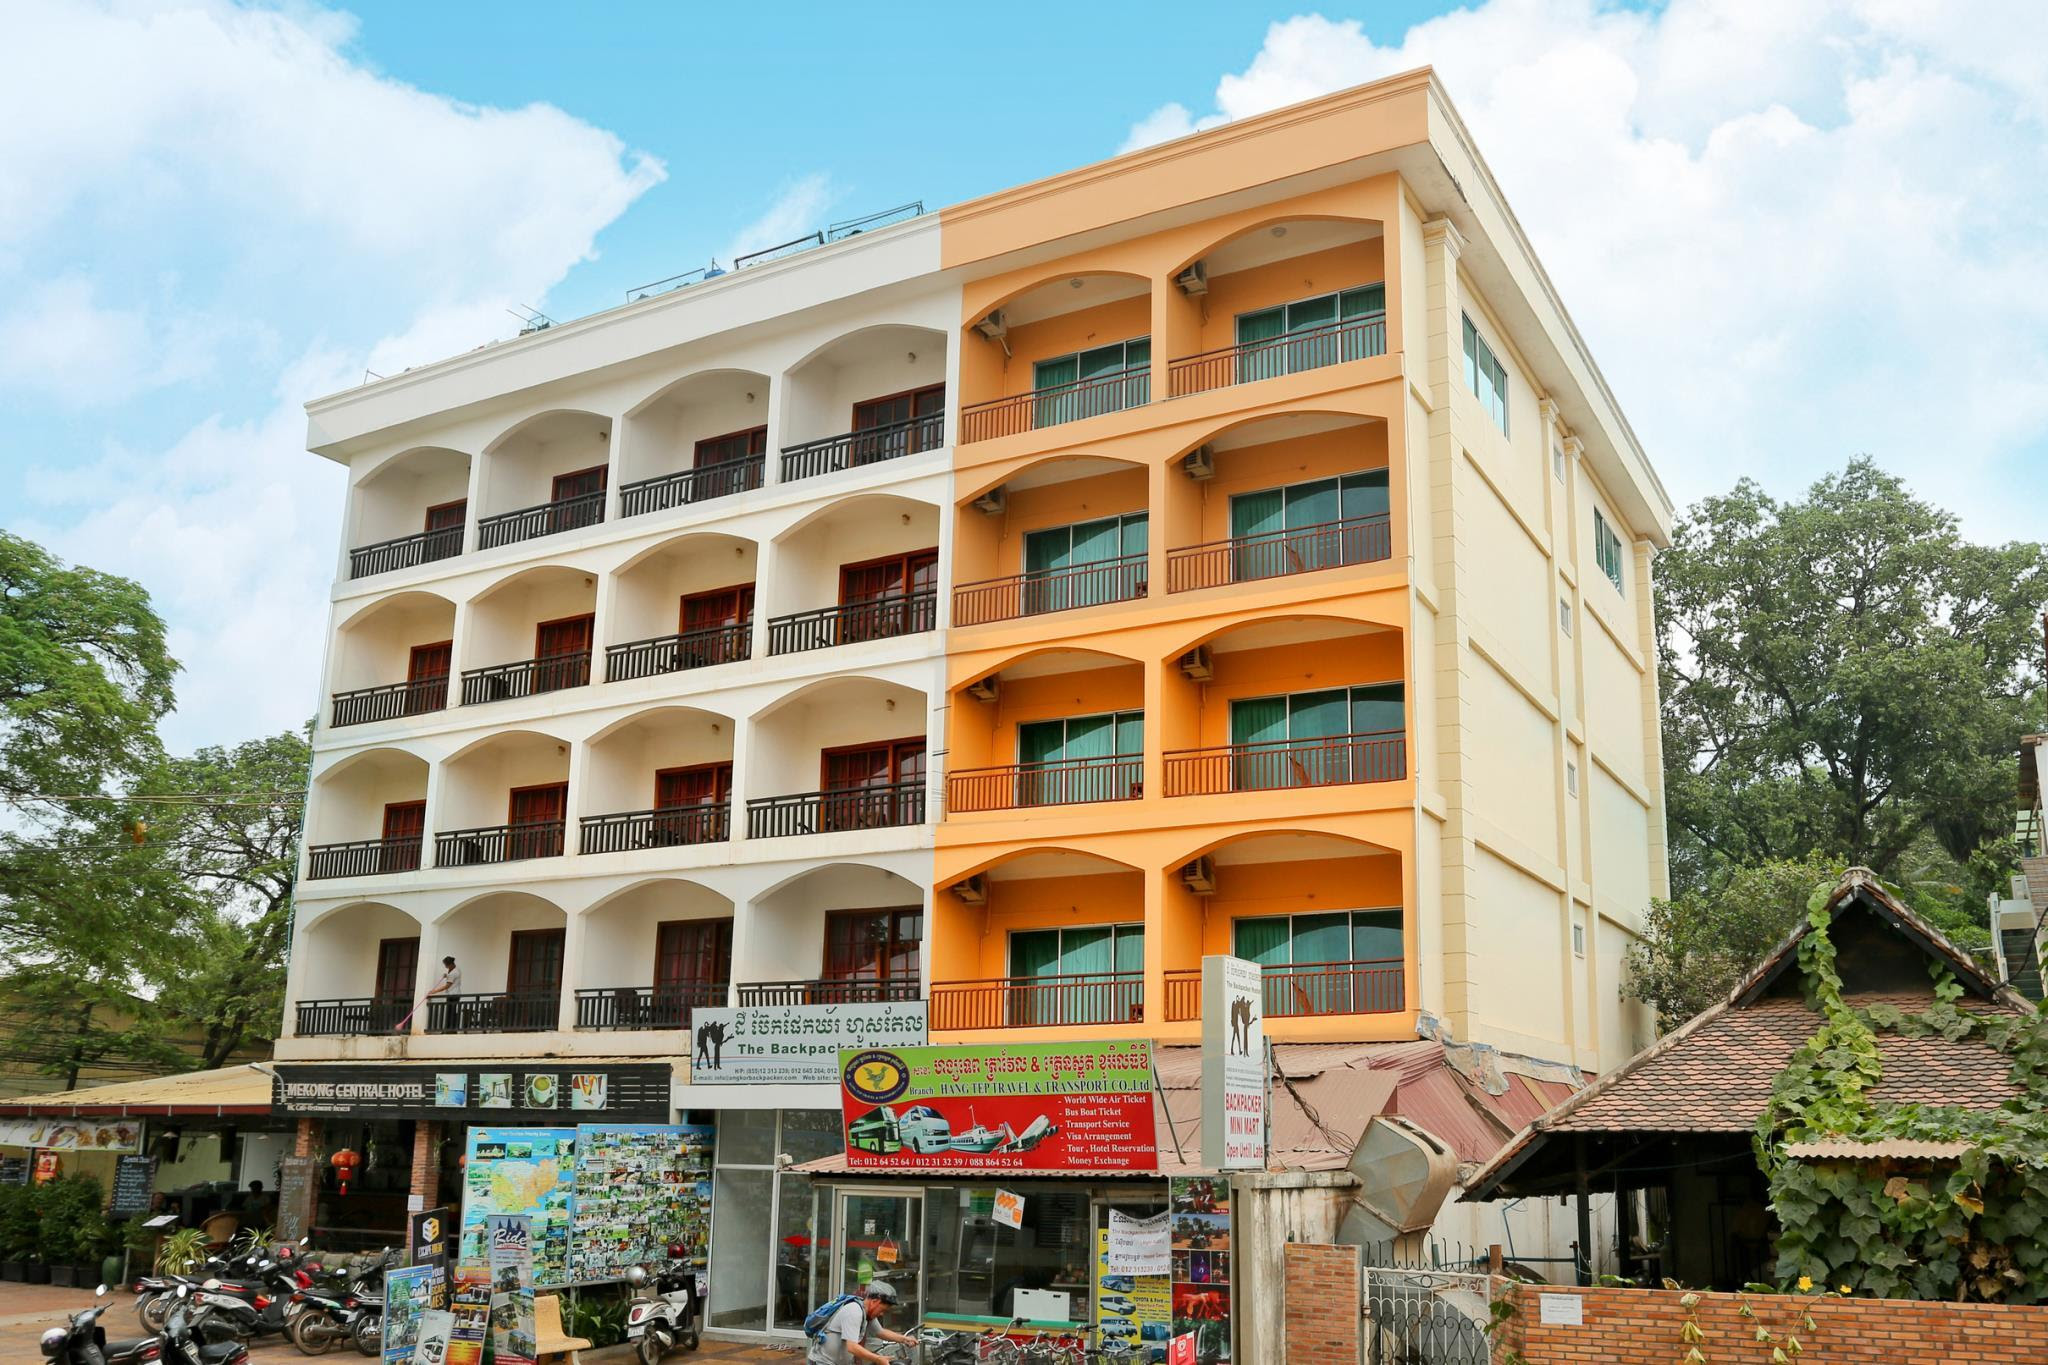 The Backpacker Hostel Reviews